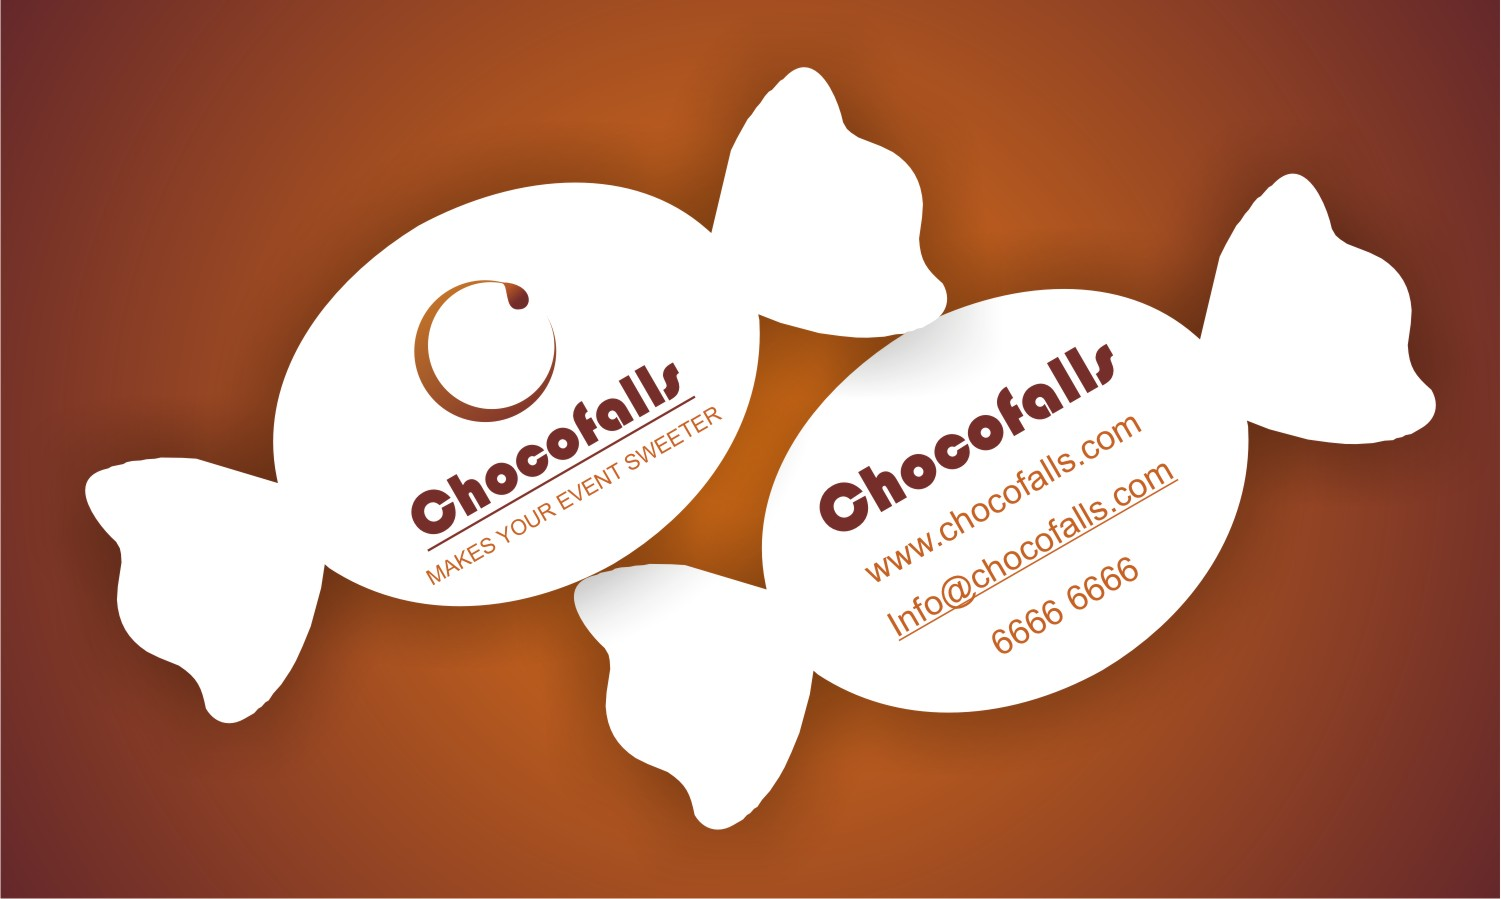 Harshini Creative Graphics: Unique Business card for Chocolate Company